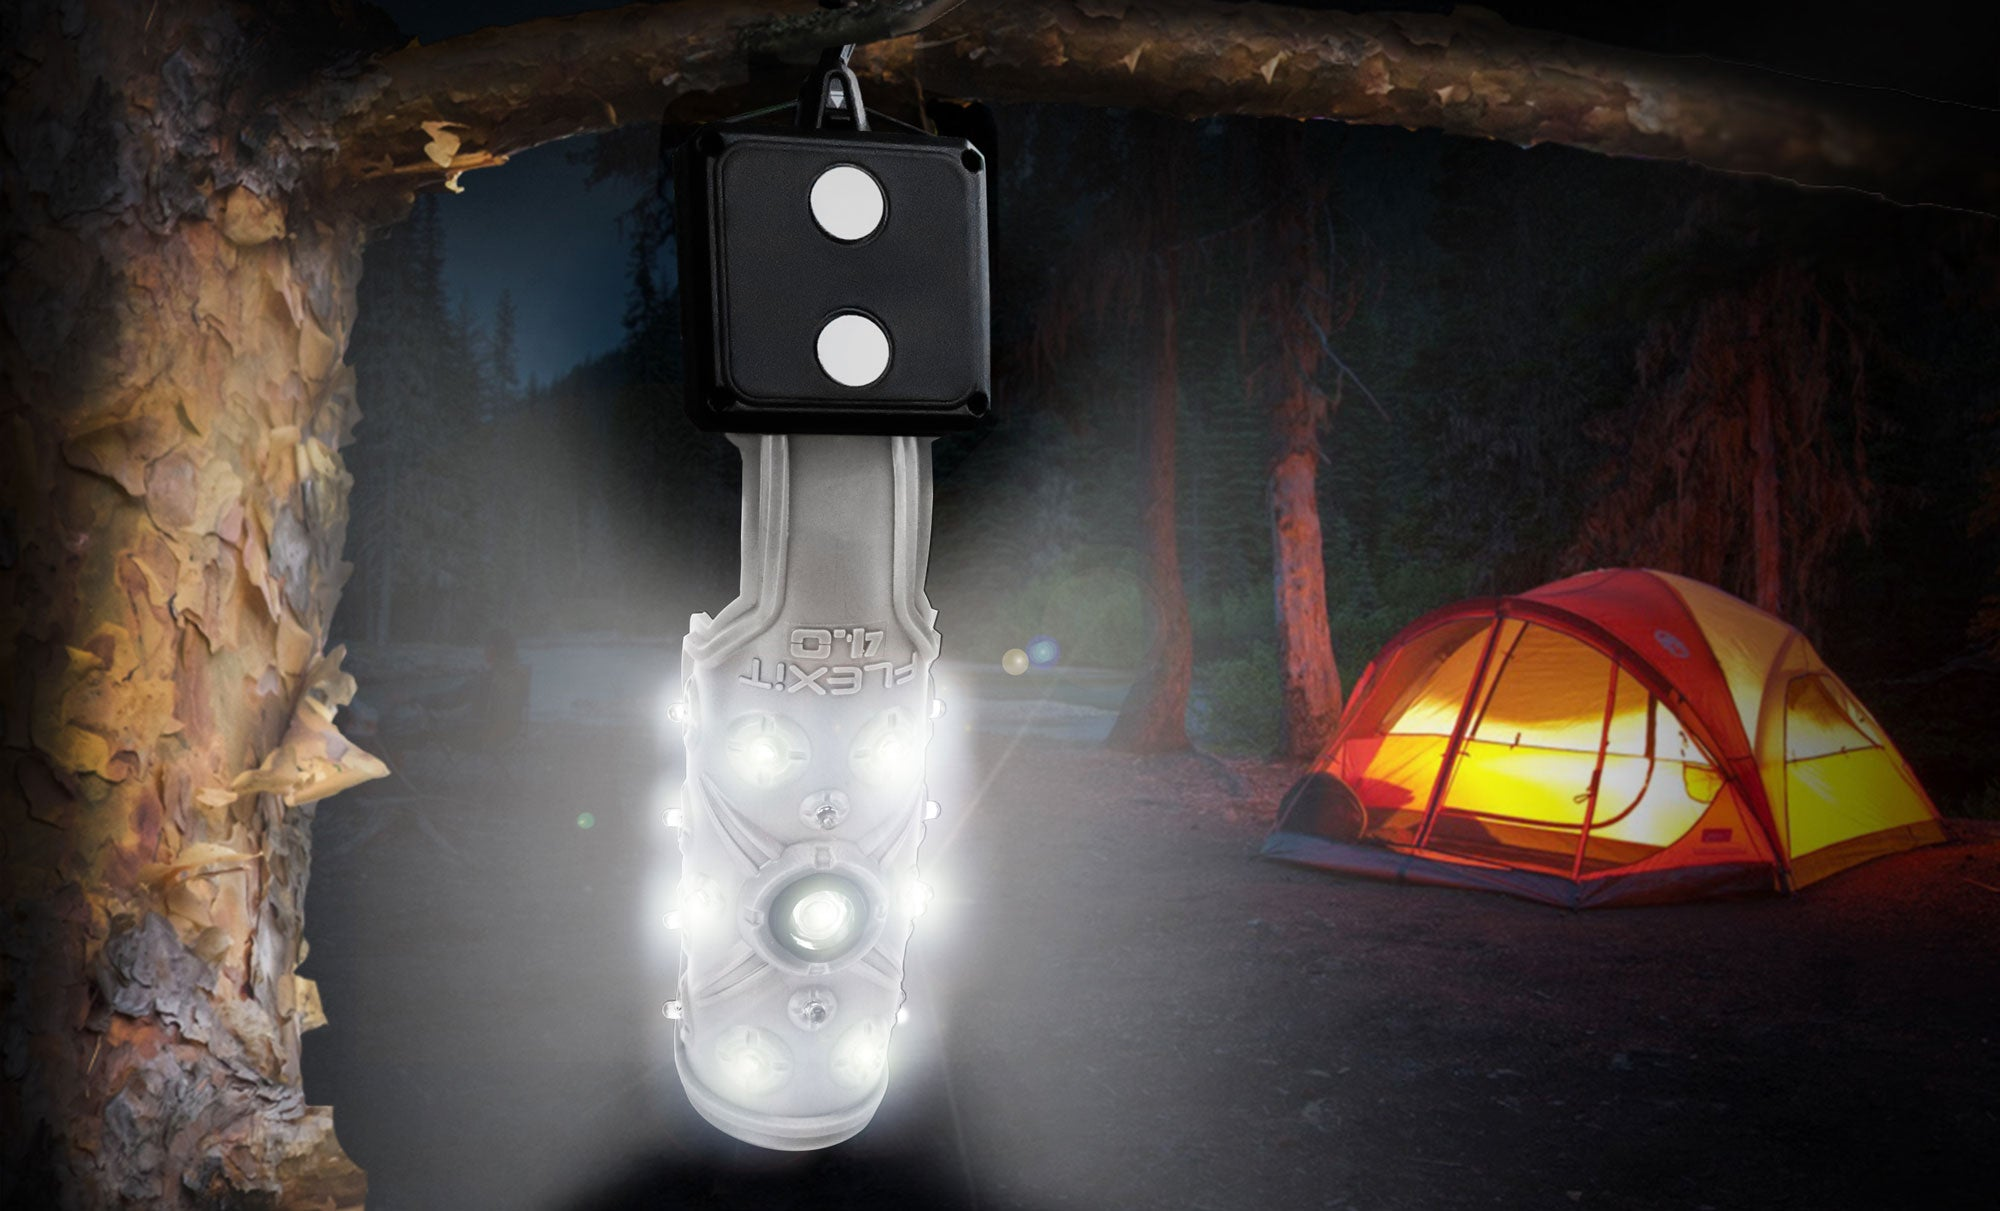 STKR Concepts - FLEXiT 4.0 Flexible Flashlight used for Camping | striker